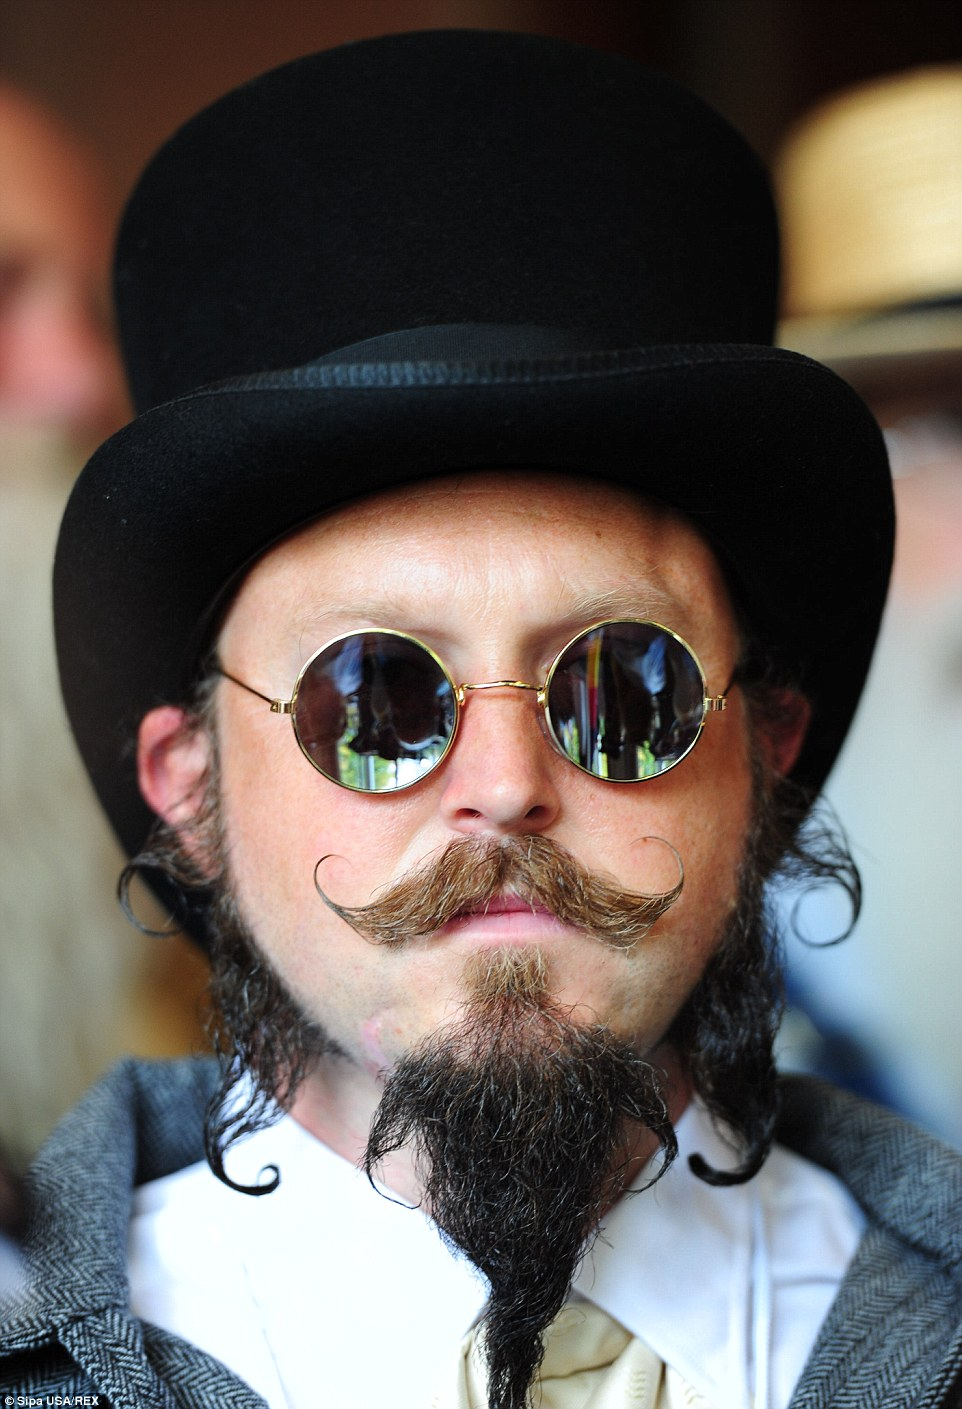 A man in a top hat shows off his well-perfected facial hair at the competition which celebrates unconventional looks